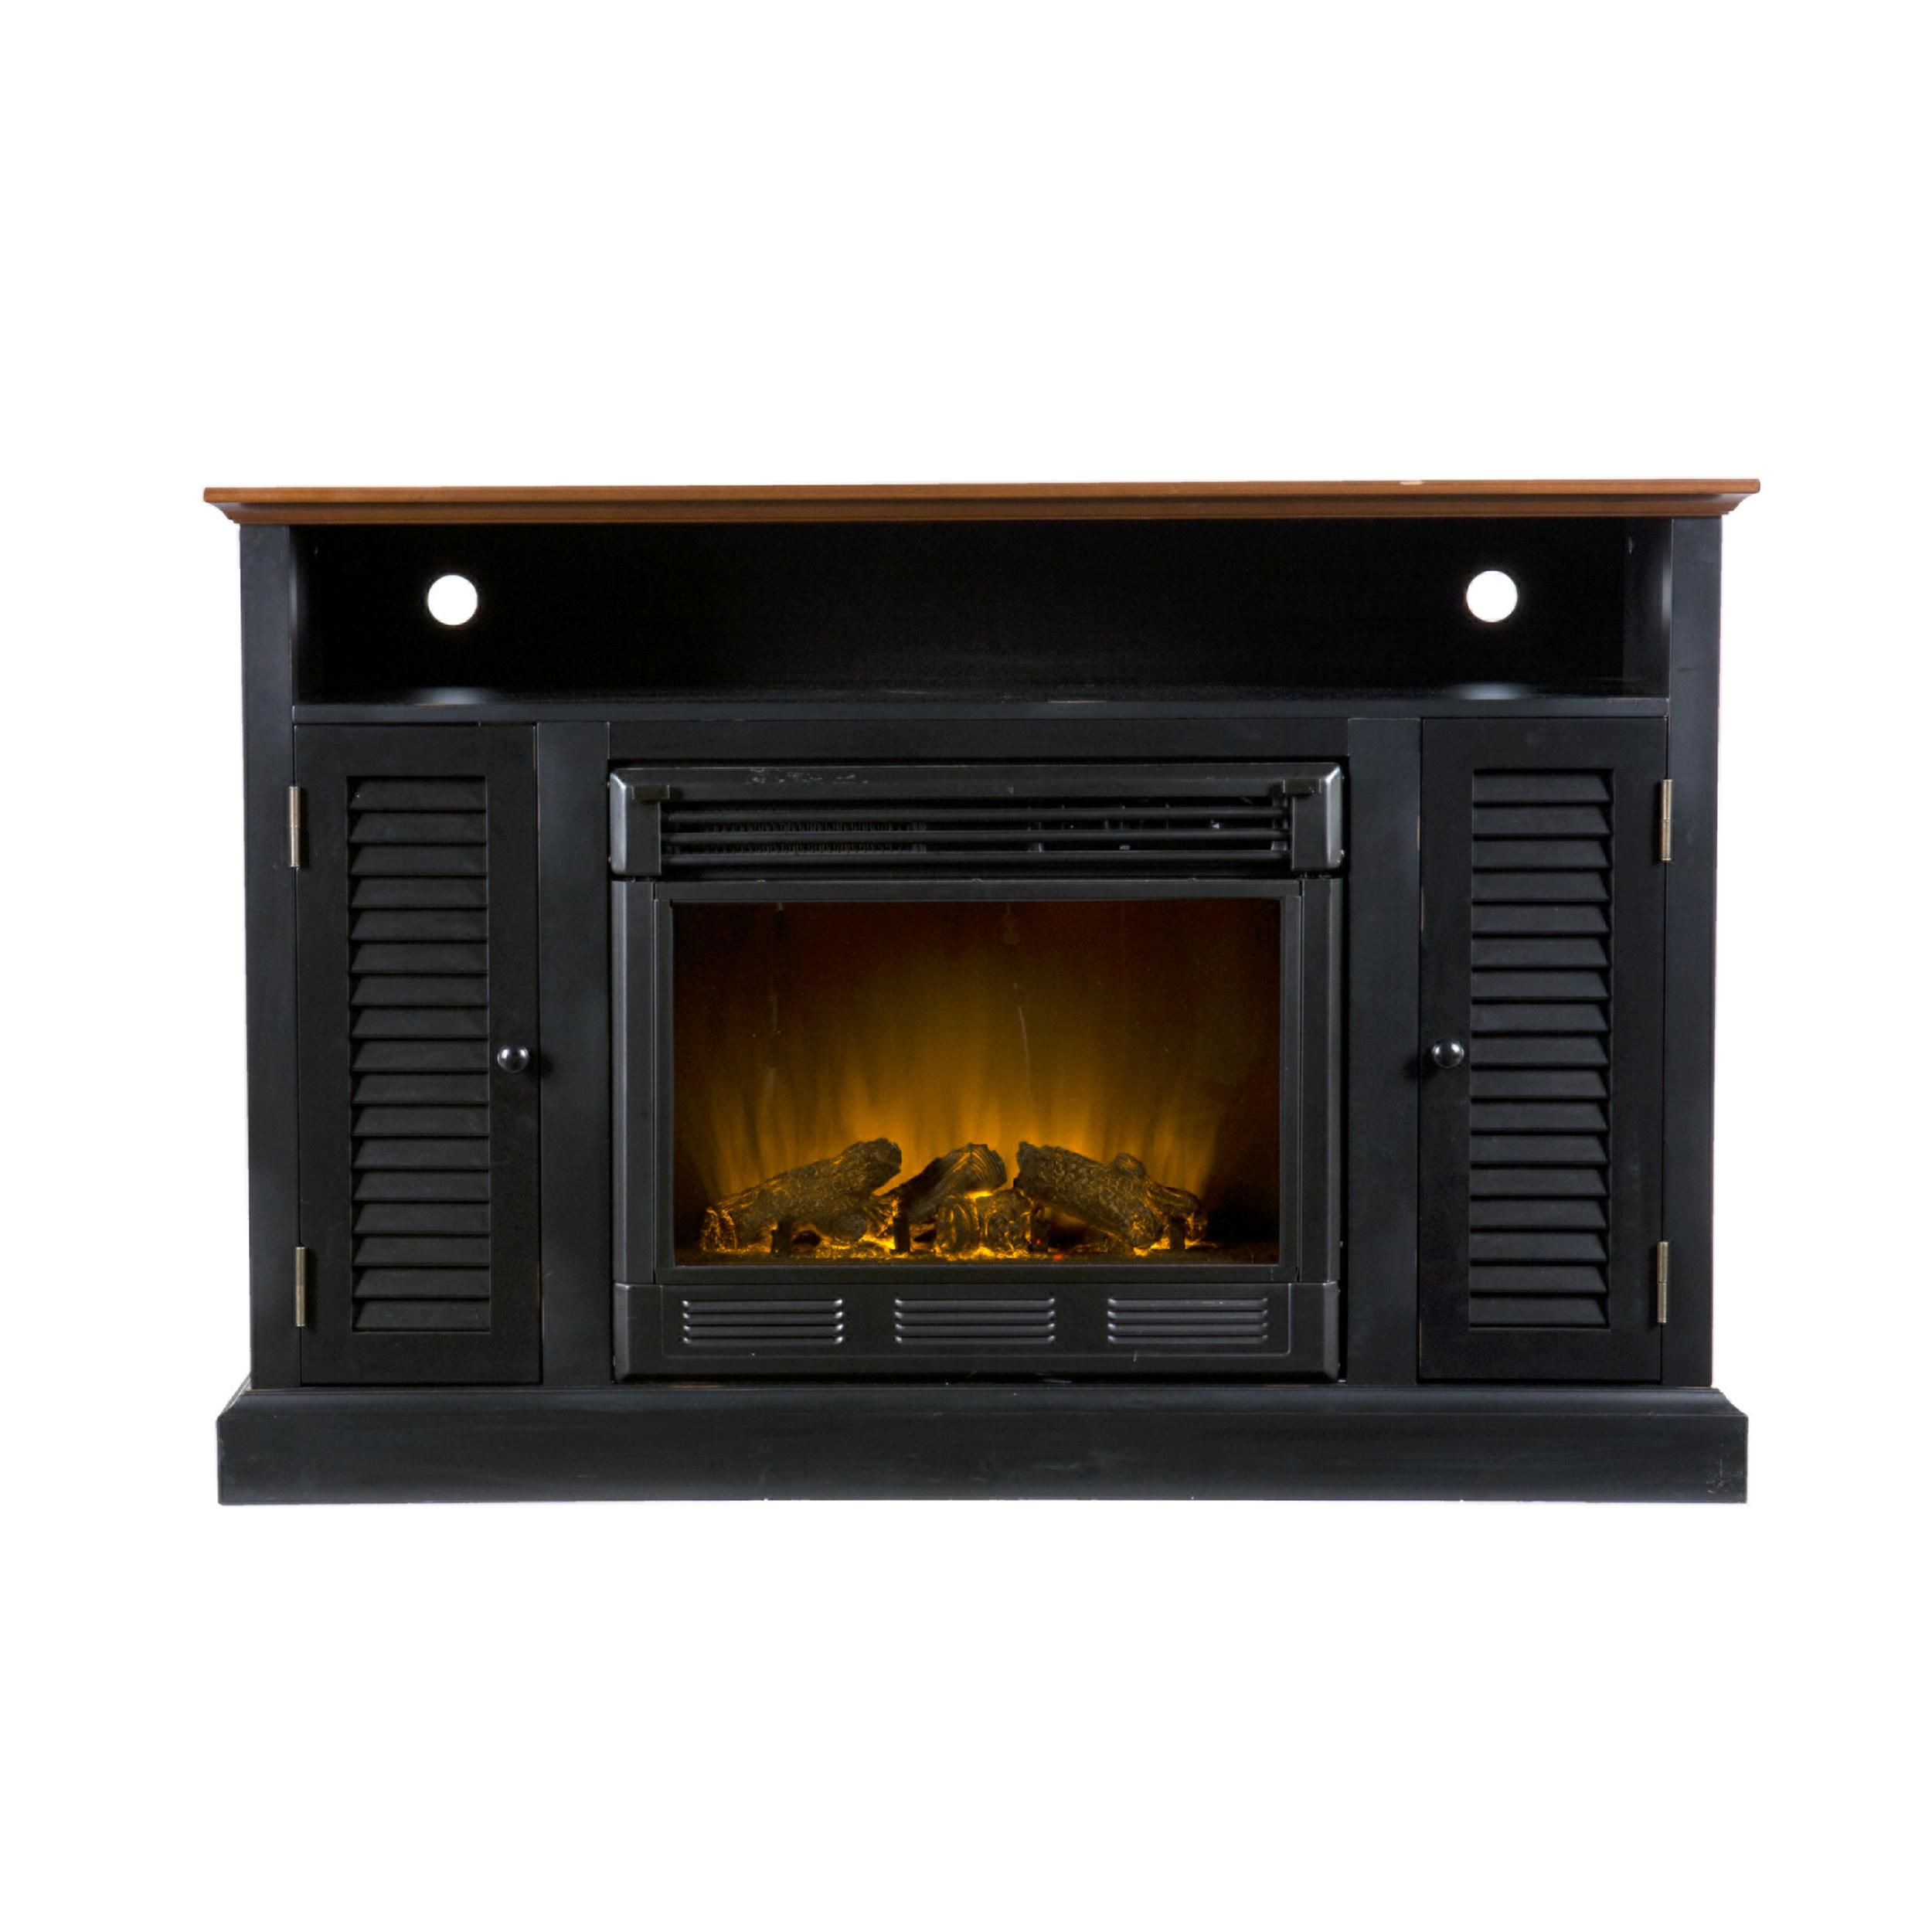 Amazoncom SEI Antebellum Media Console with Electric Fireplace